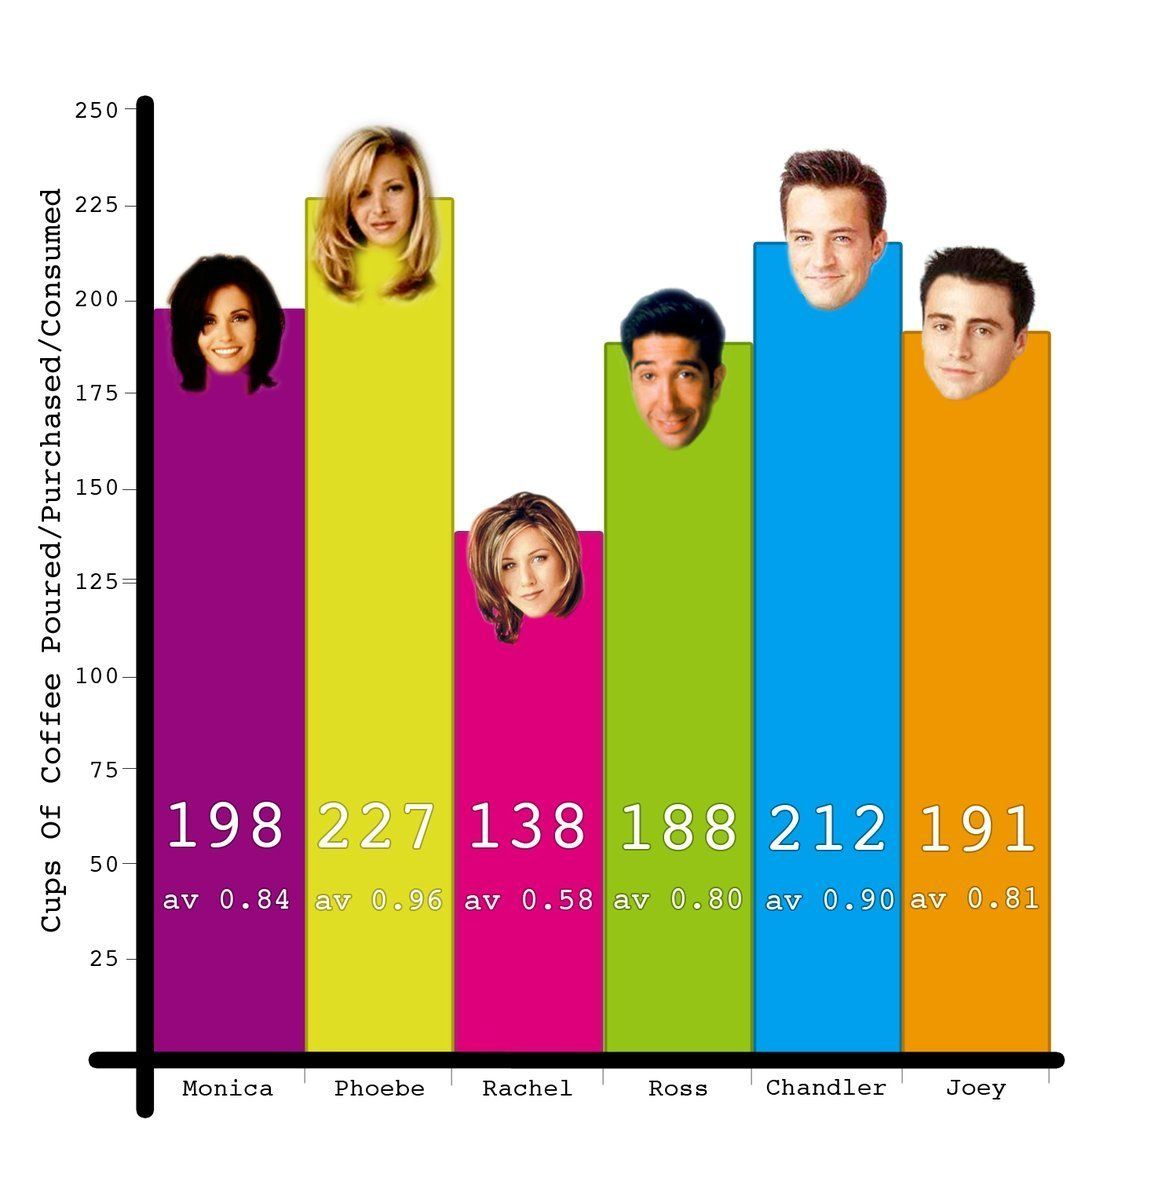 Here's How Much Coffee The 'Friends' Characters Consumed Over 10